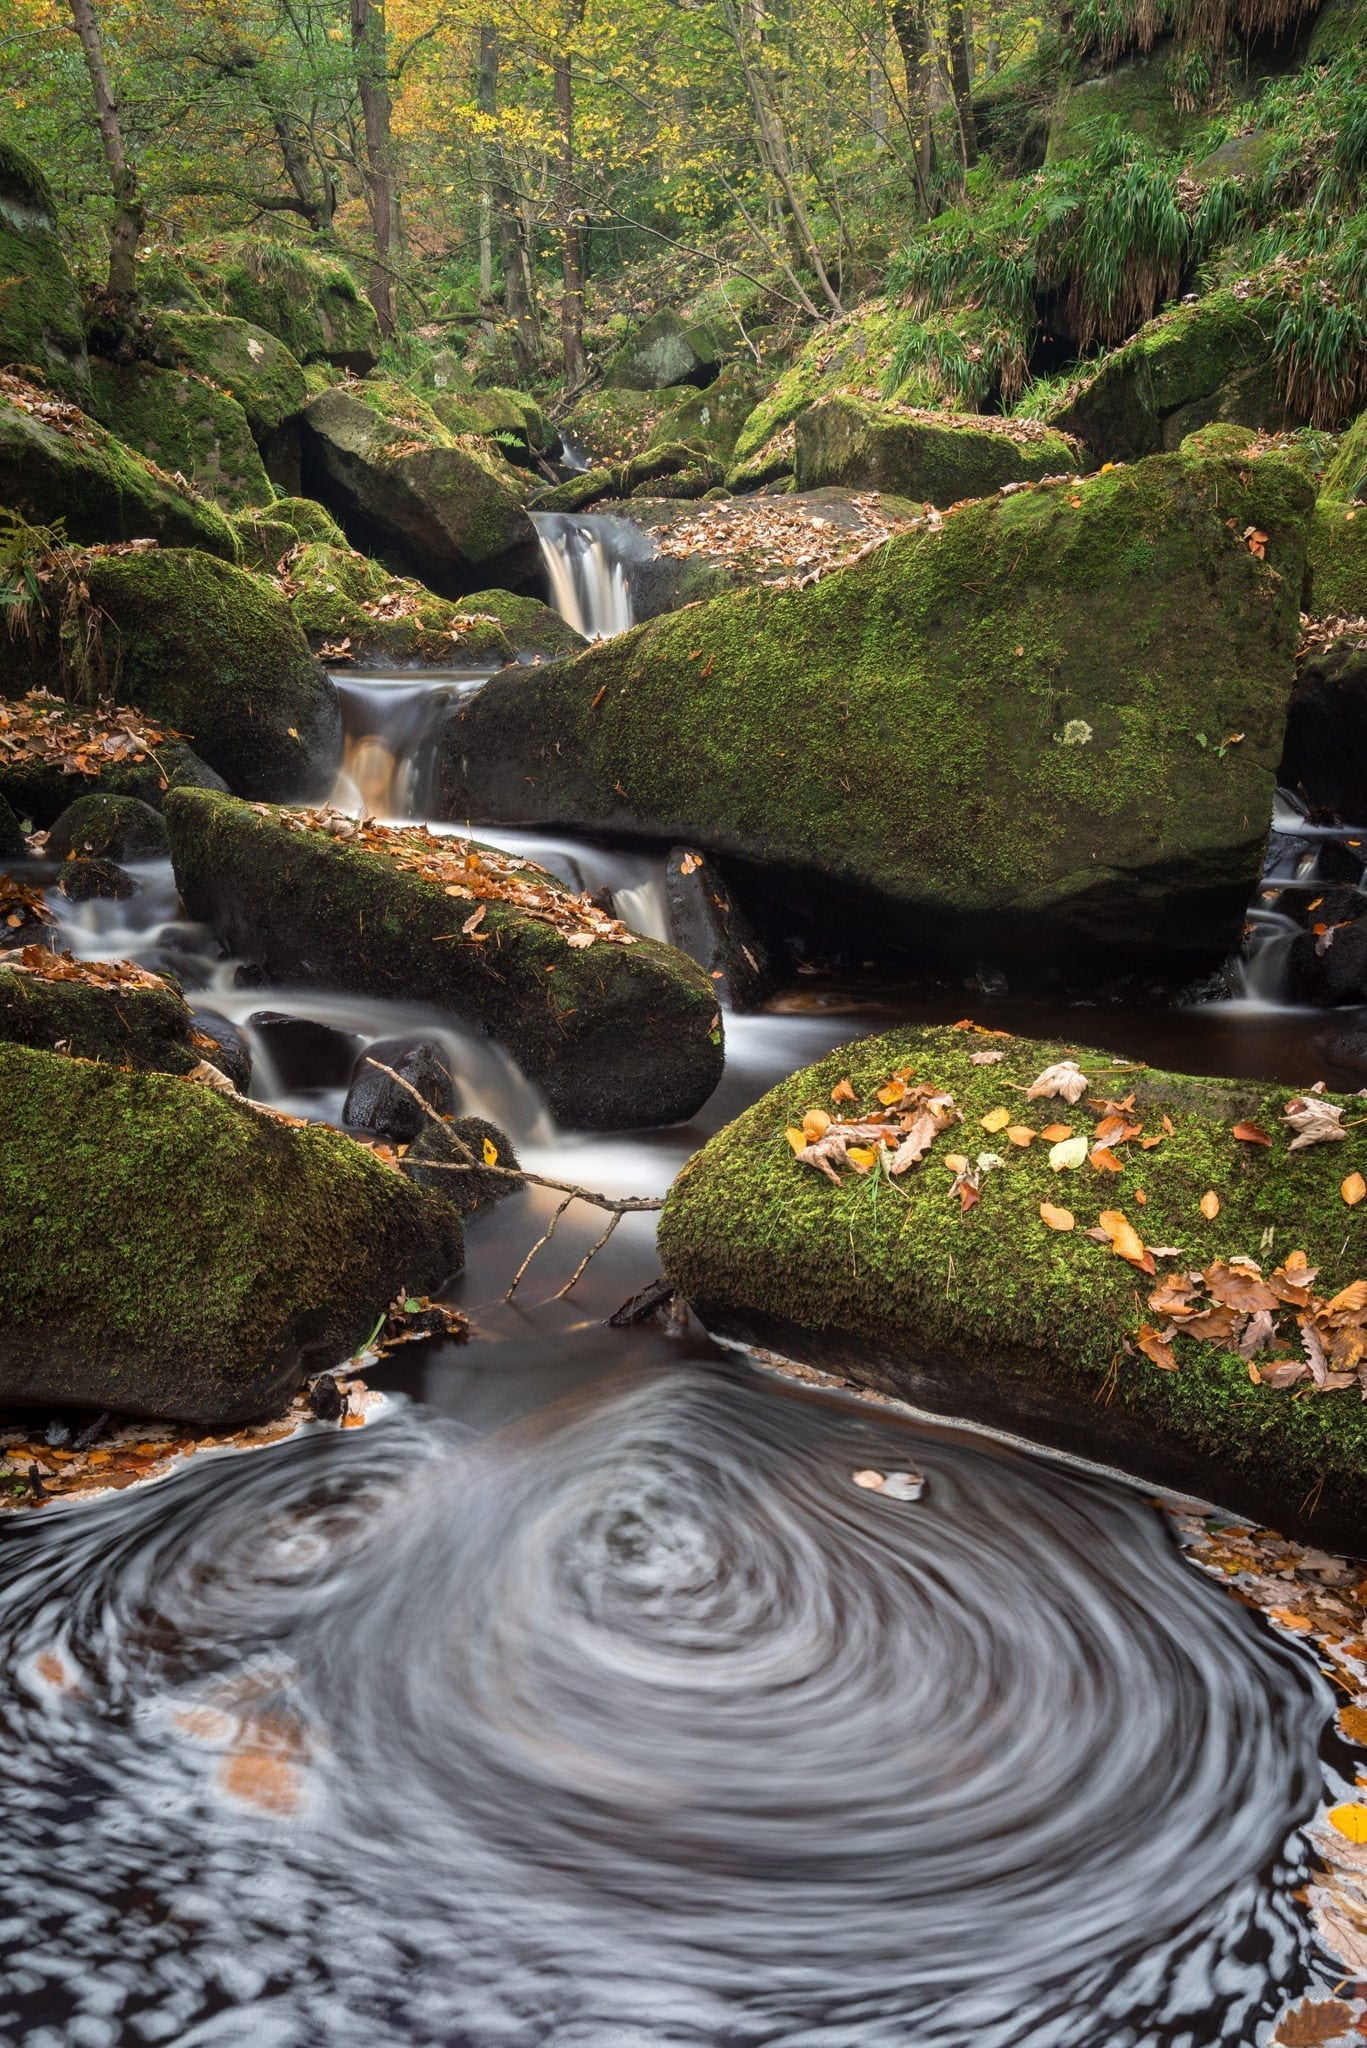 Padley Gorge Autumn Whirlpool - Autumn in the Peak District Photography Workshop